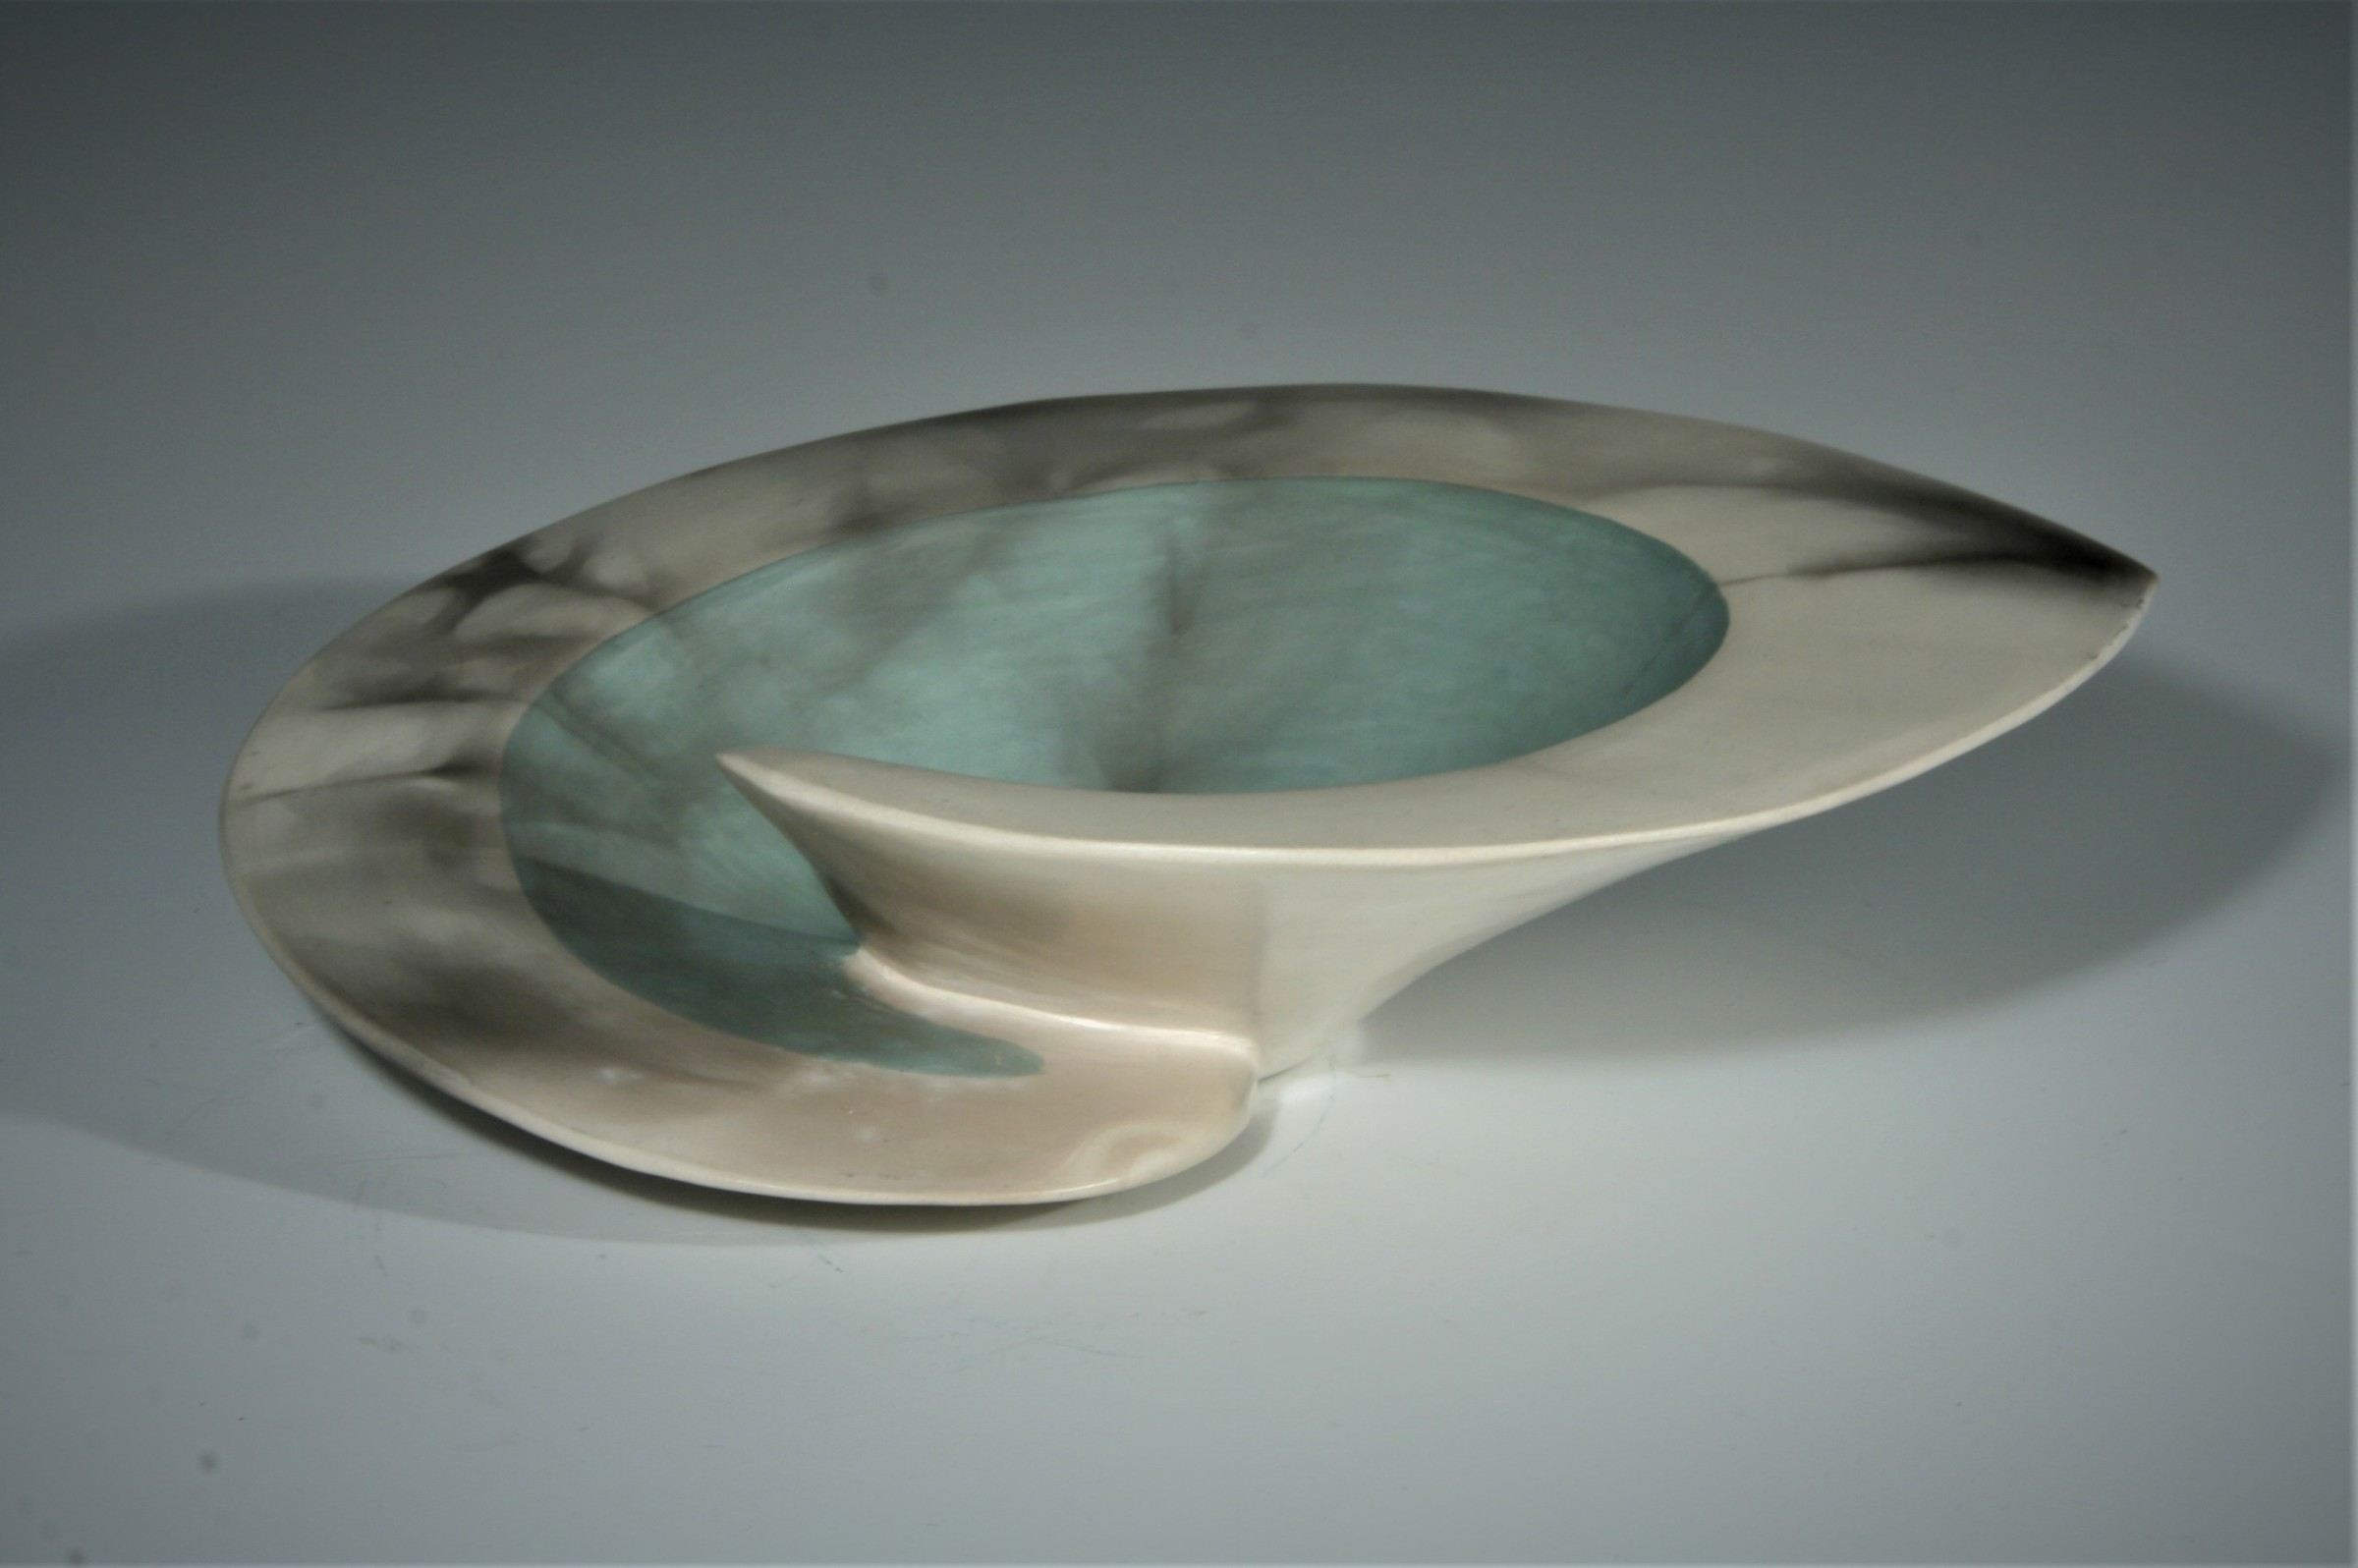 "<span class=""link fancybox-details-link""><a href=""/artists/38-antonia-salmon/works/5696-antonia-salmon-green-dervish-bowl-iv-2018/"">View Detail Page</a></span><div class=""artist""><strong>Antonia Salmon</strong></div> <div class=""title""><em>Green Dervish Bowl IV</em>, 2018</div> <div class=""signed_and_dated"">stamped AS</div> <div class=""medium"">Ceramic</div><div class=""copyright_line"">£ 21 x 10 Months, OwnArt 0% APR</div>"